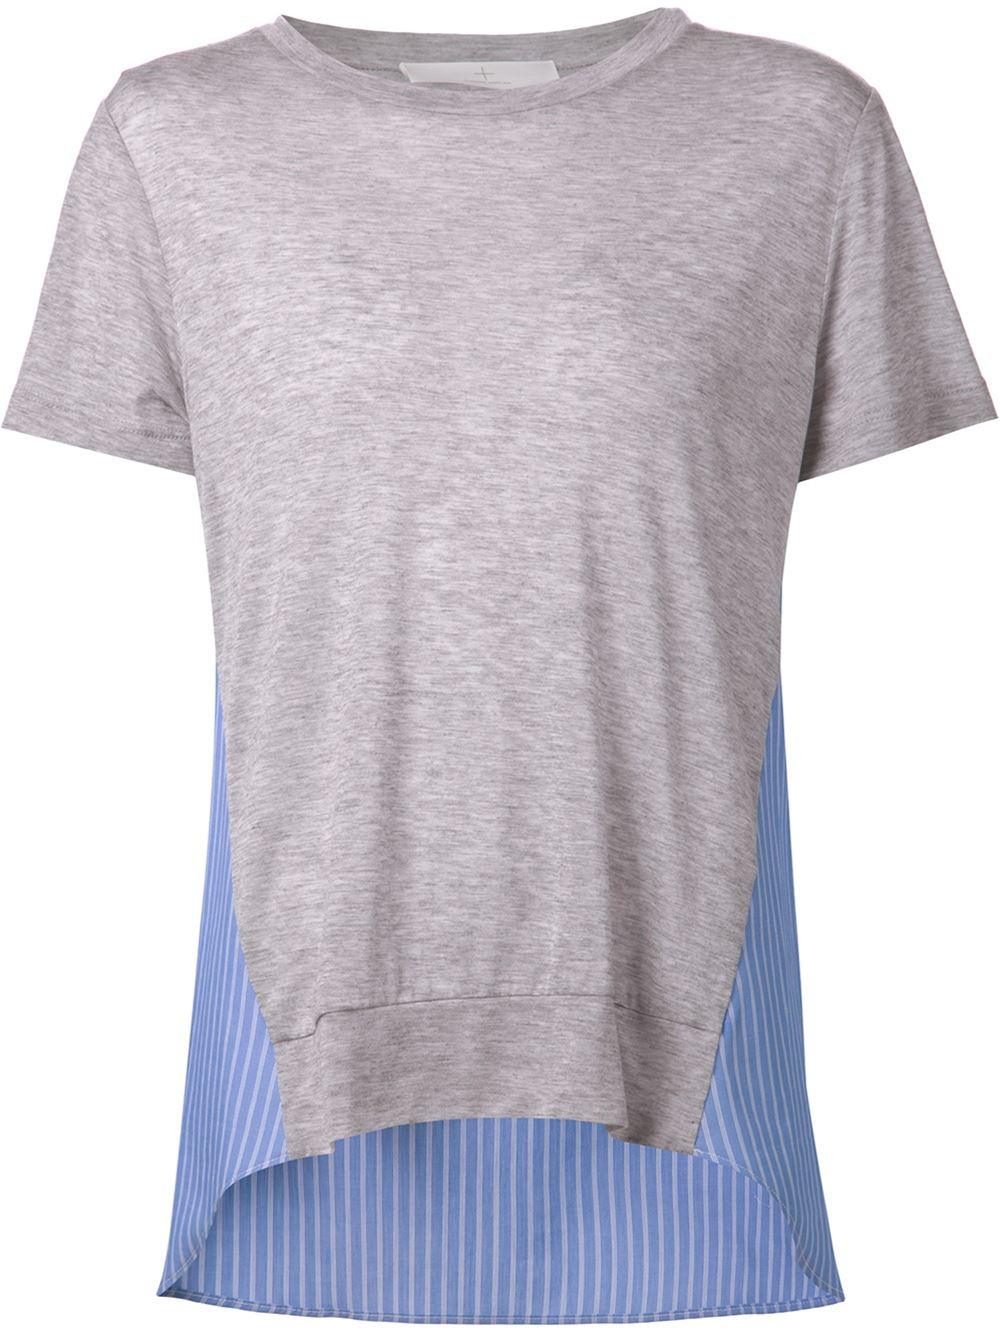 Thakoon addition striped panel t shirt in gray grey lyst for Grey striped t shirt